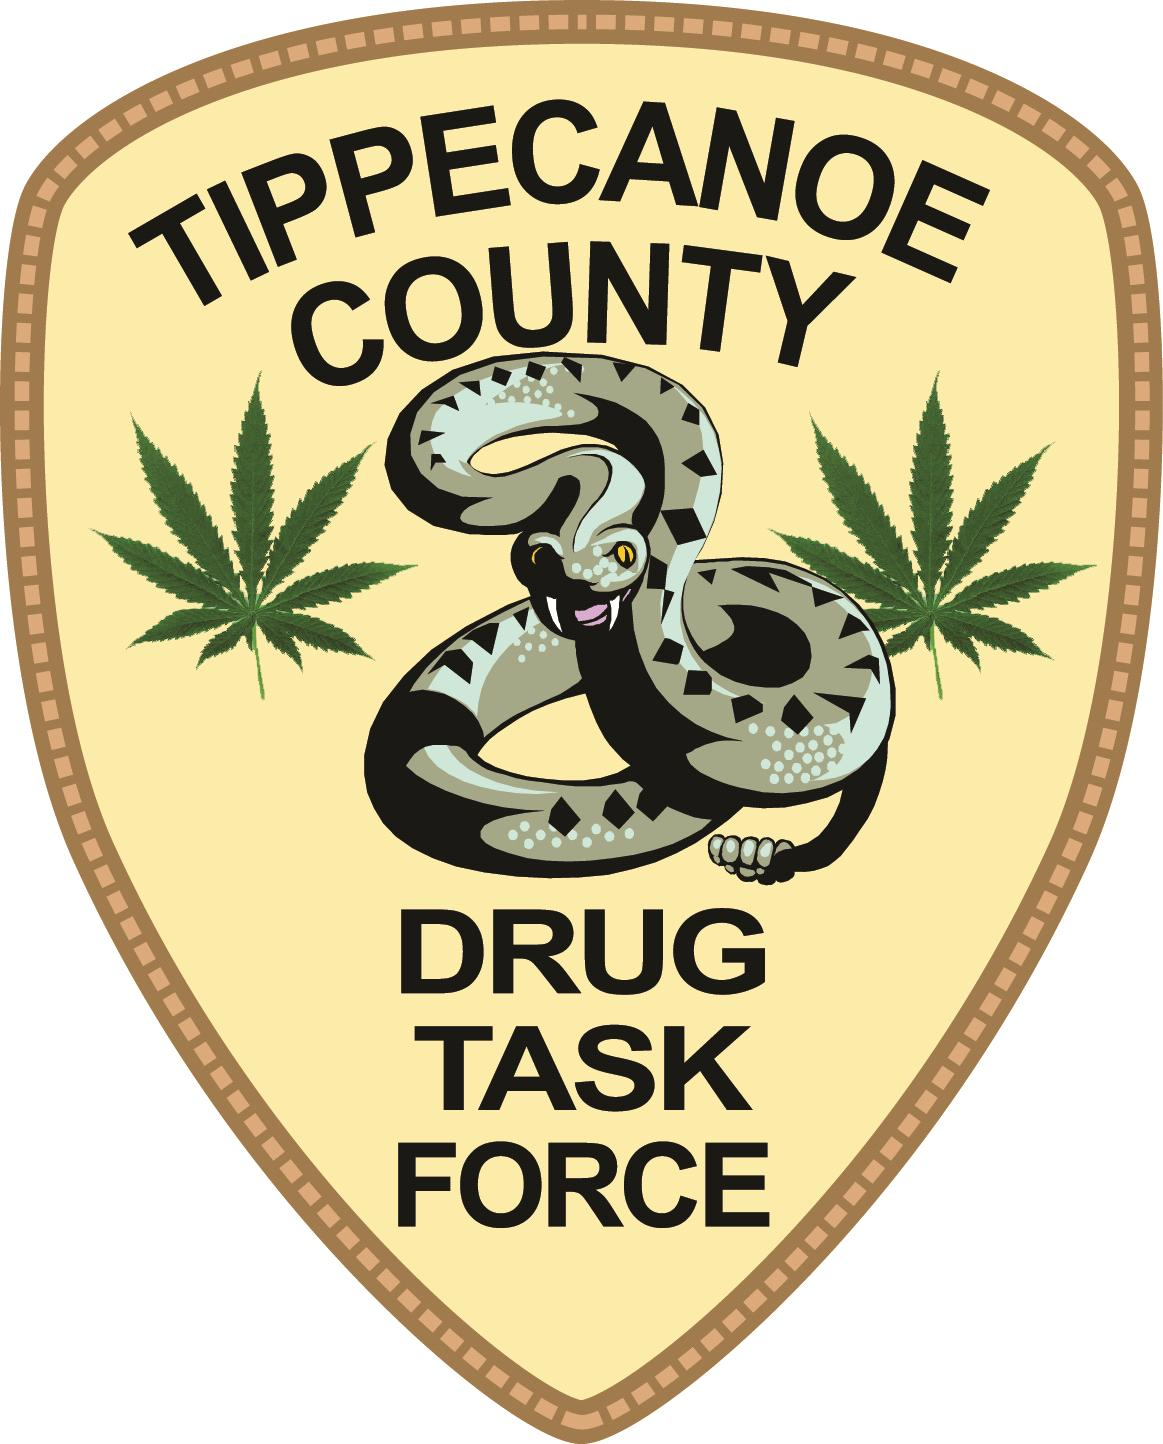 Tippecanoe County Drug Task Force Badge